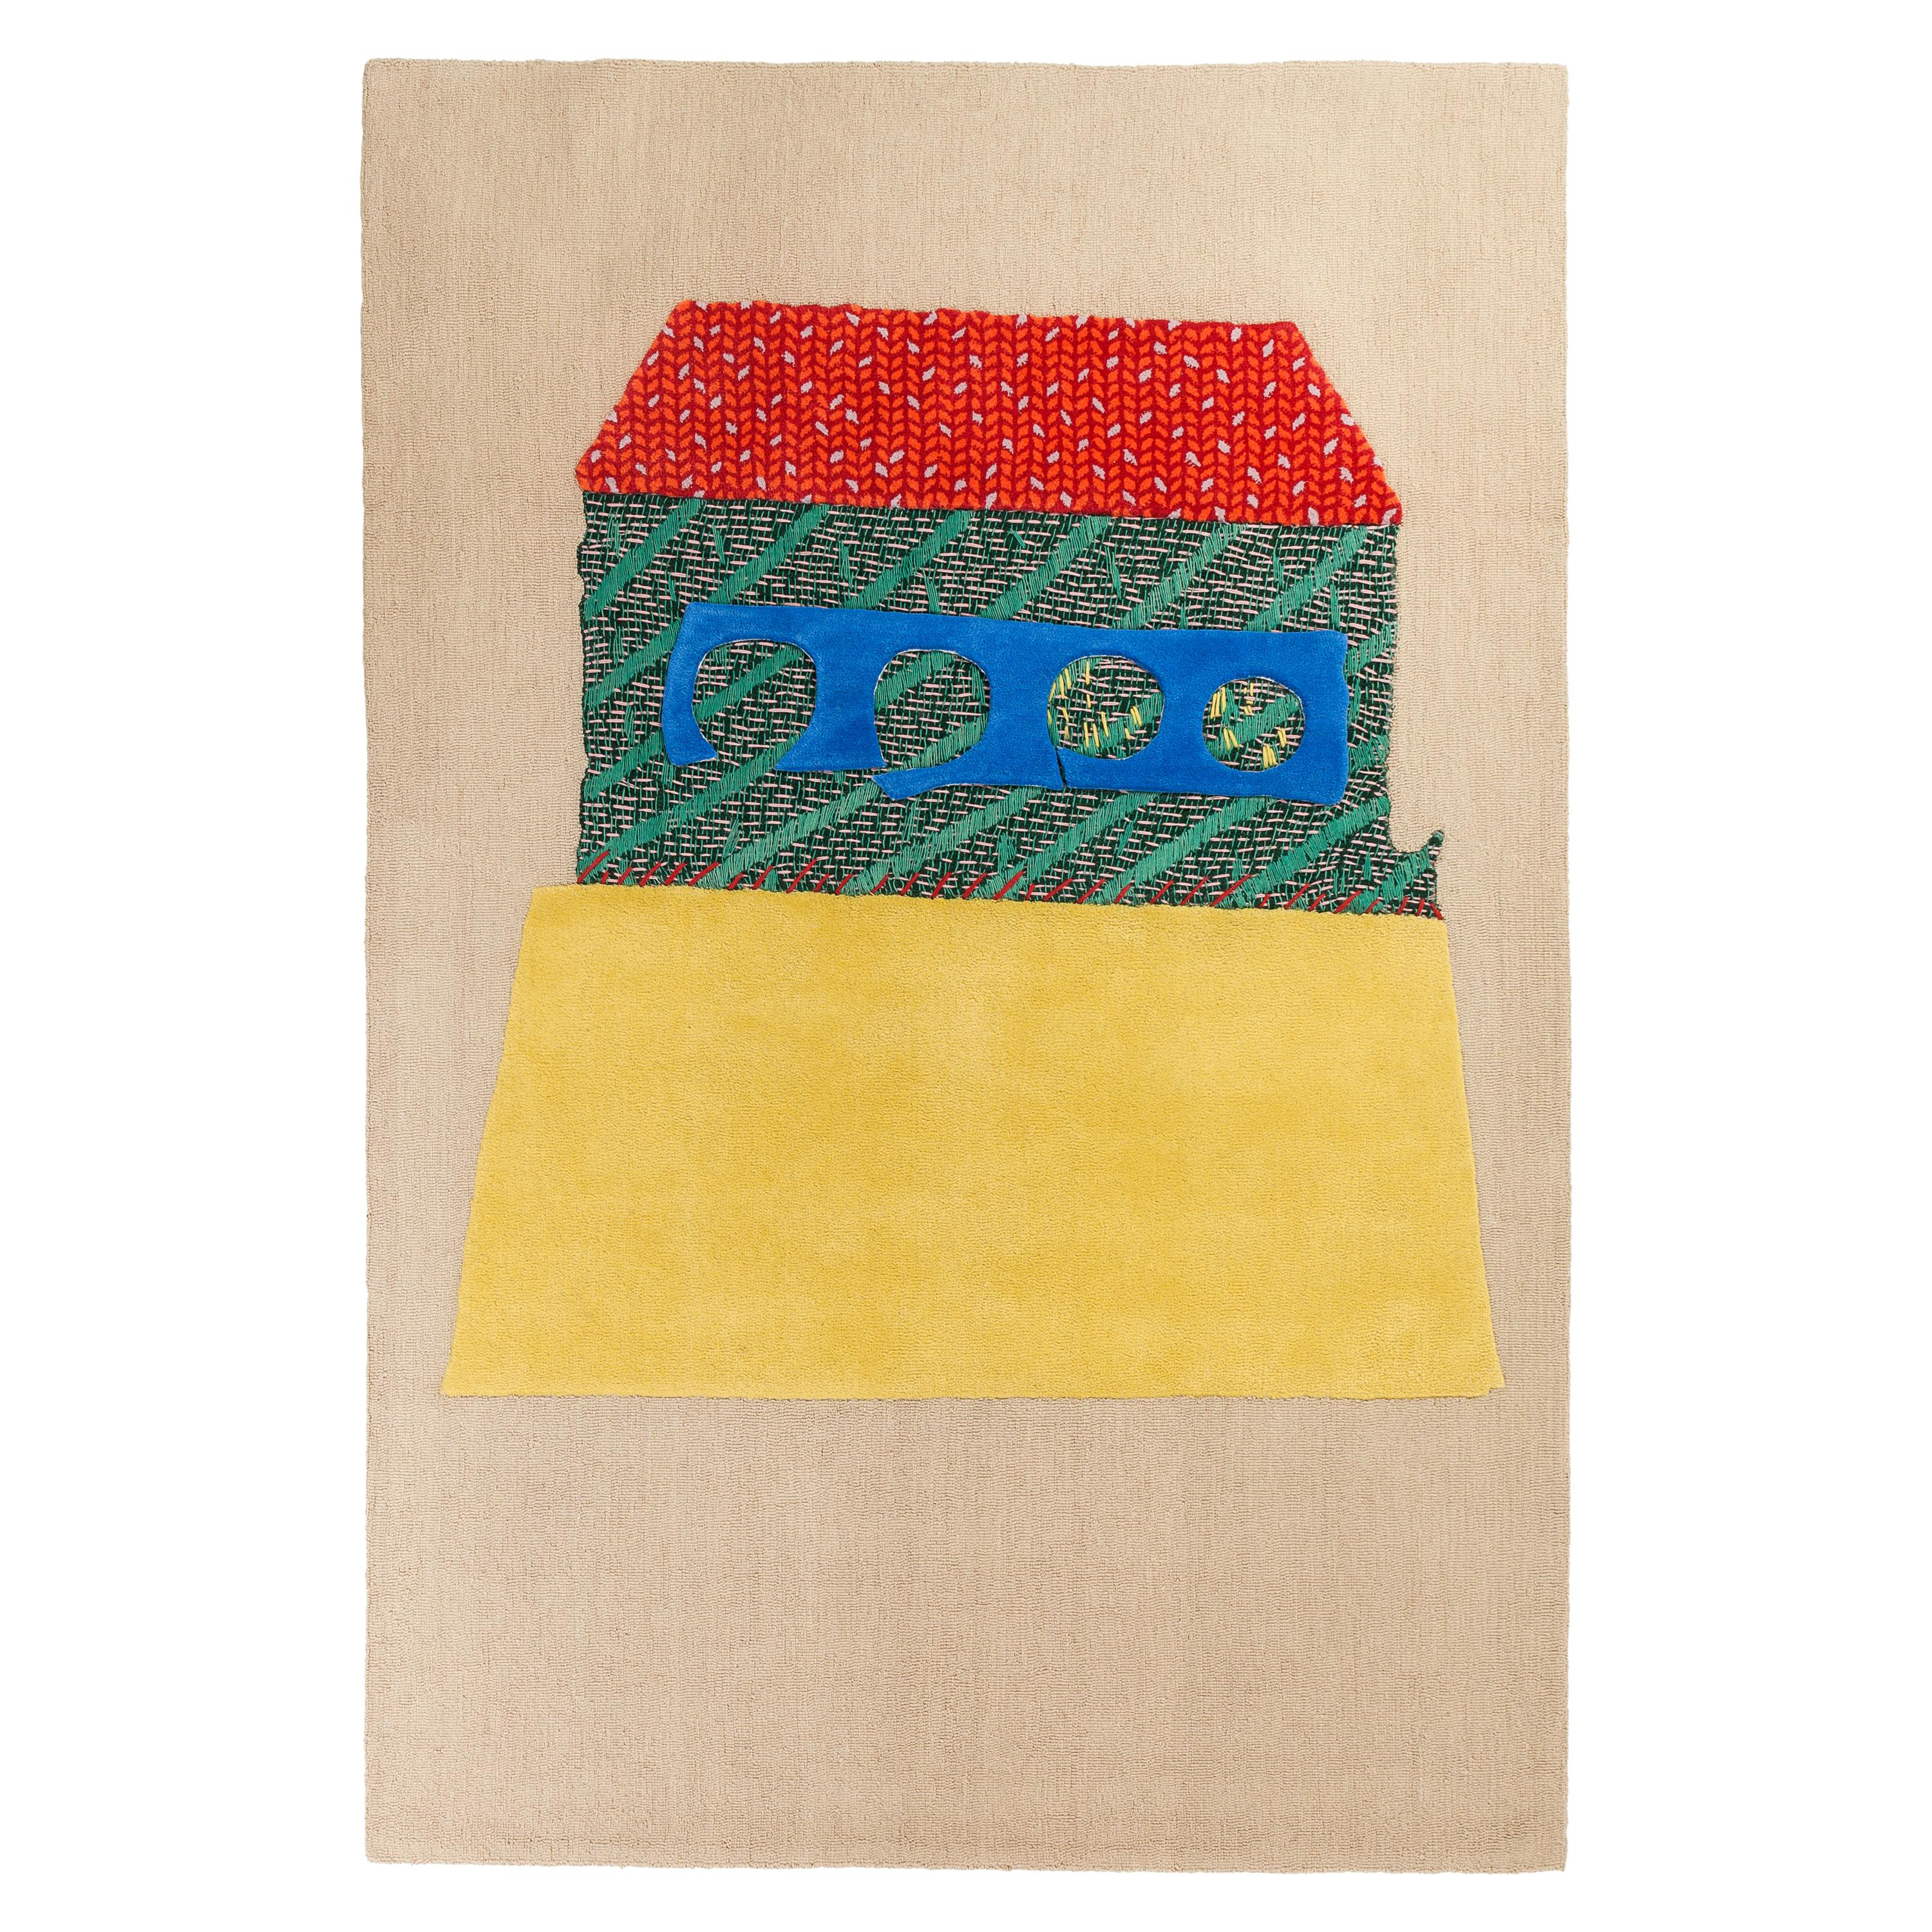 Country House, Handtufted and Knitted, Wool, Kiki van Eijk